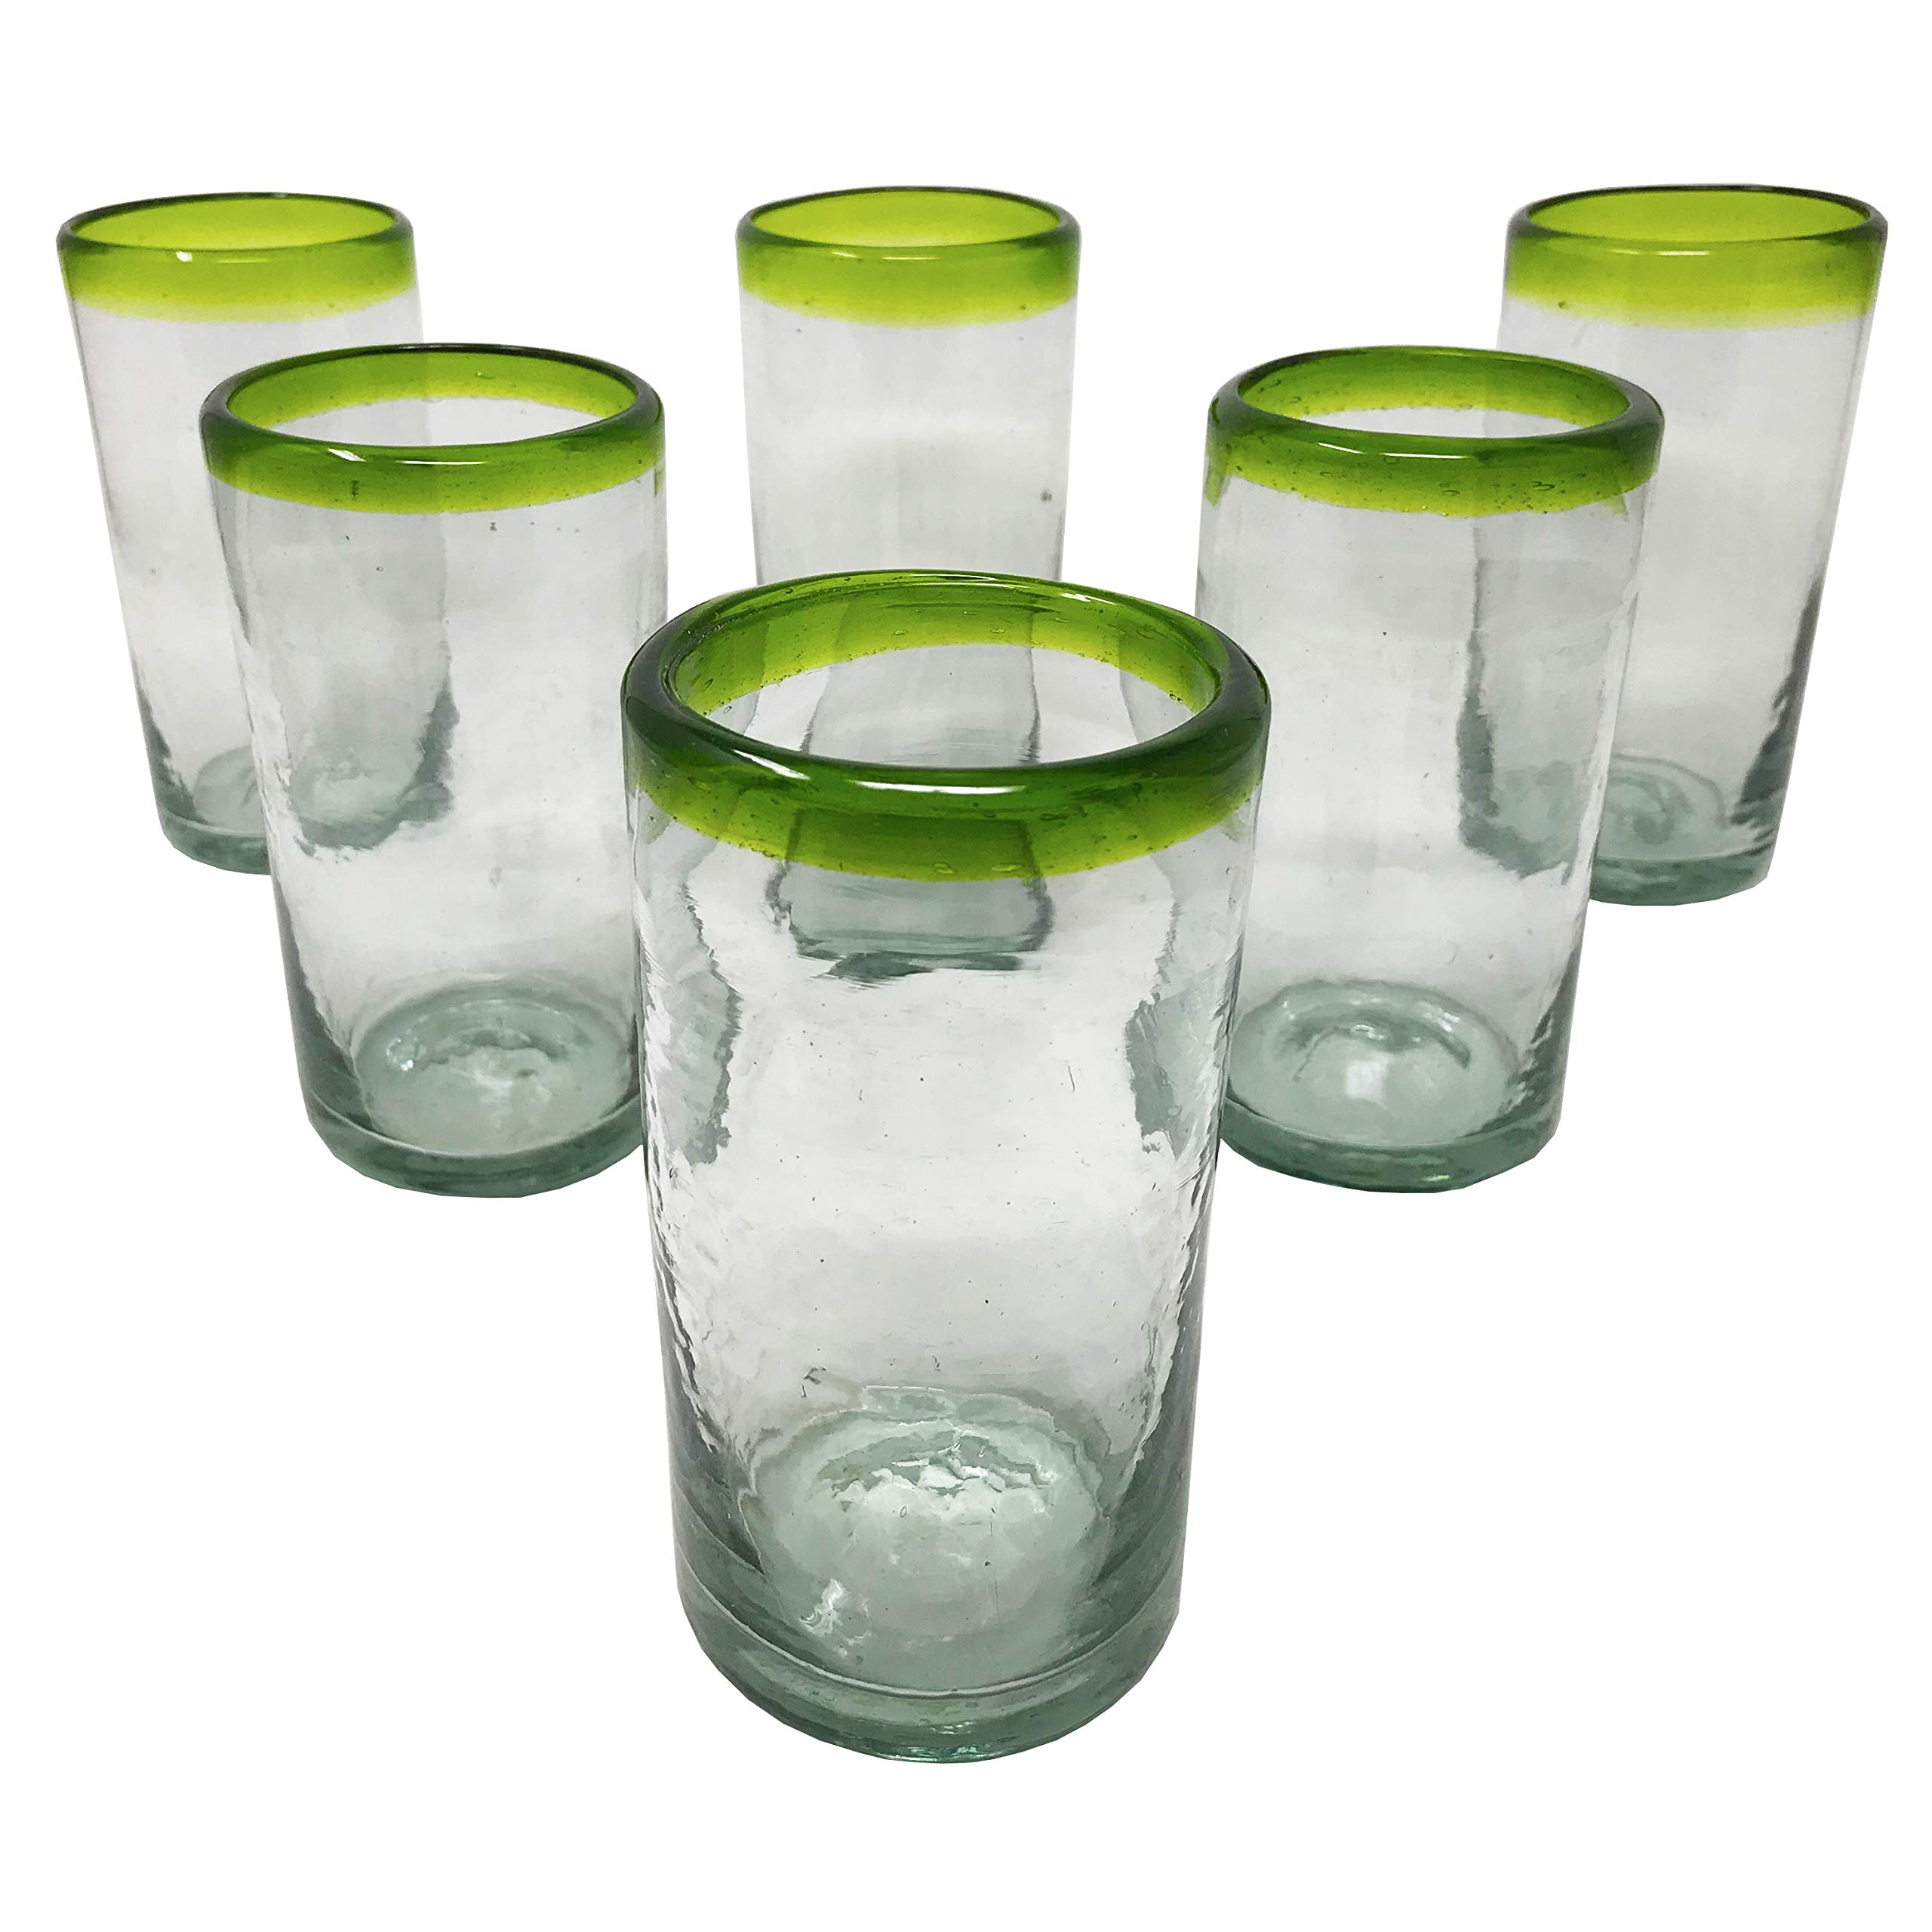 LA MEXICANA Mexican Hand Blown Drinking Glasses Cobalt Clear Green Rim Recycled Glass, 16 oz. (set of 6), Green Style